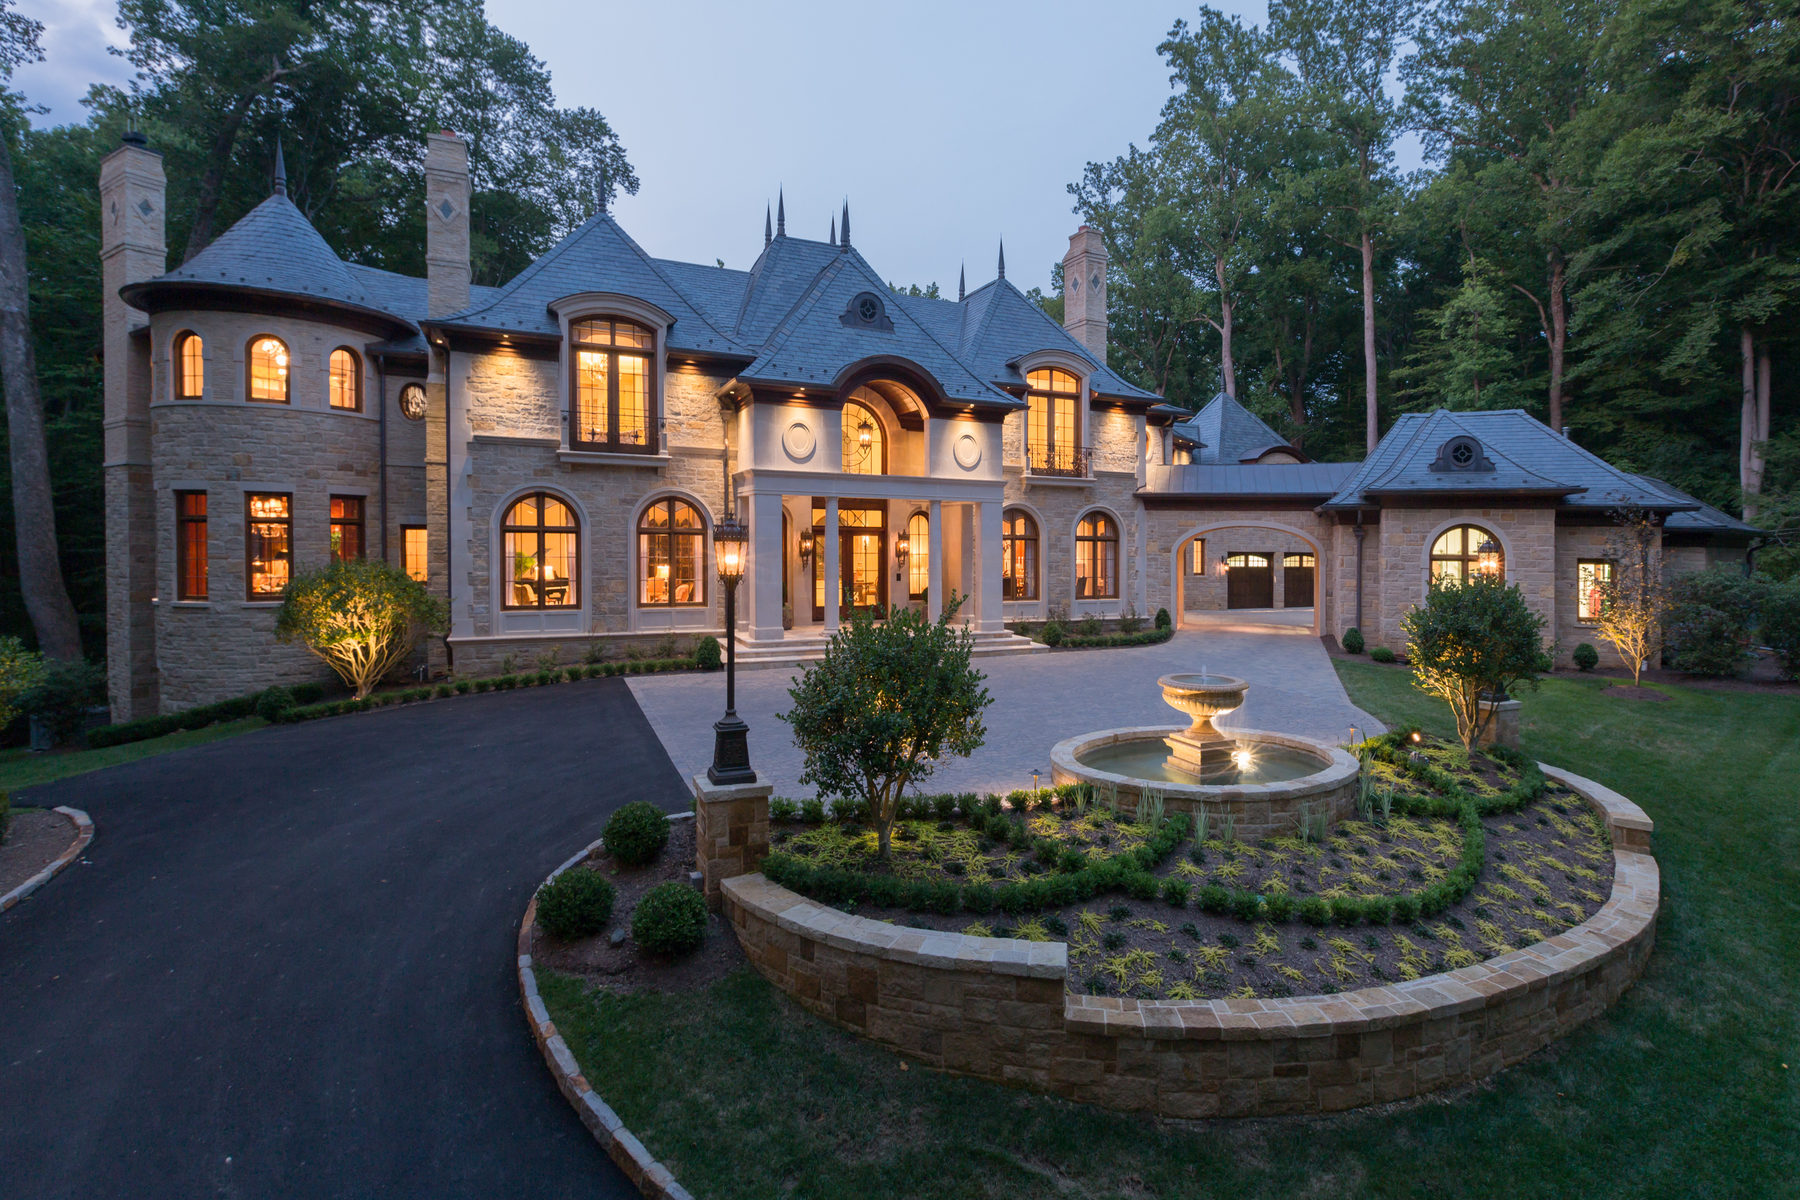 Casa Unifamiliar por un Venta en 801 Turkey Run Rd., McLean McLean, Virginia, 22101 Estados Unidos